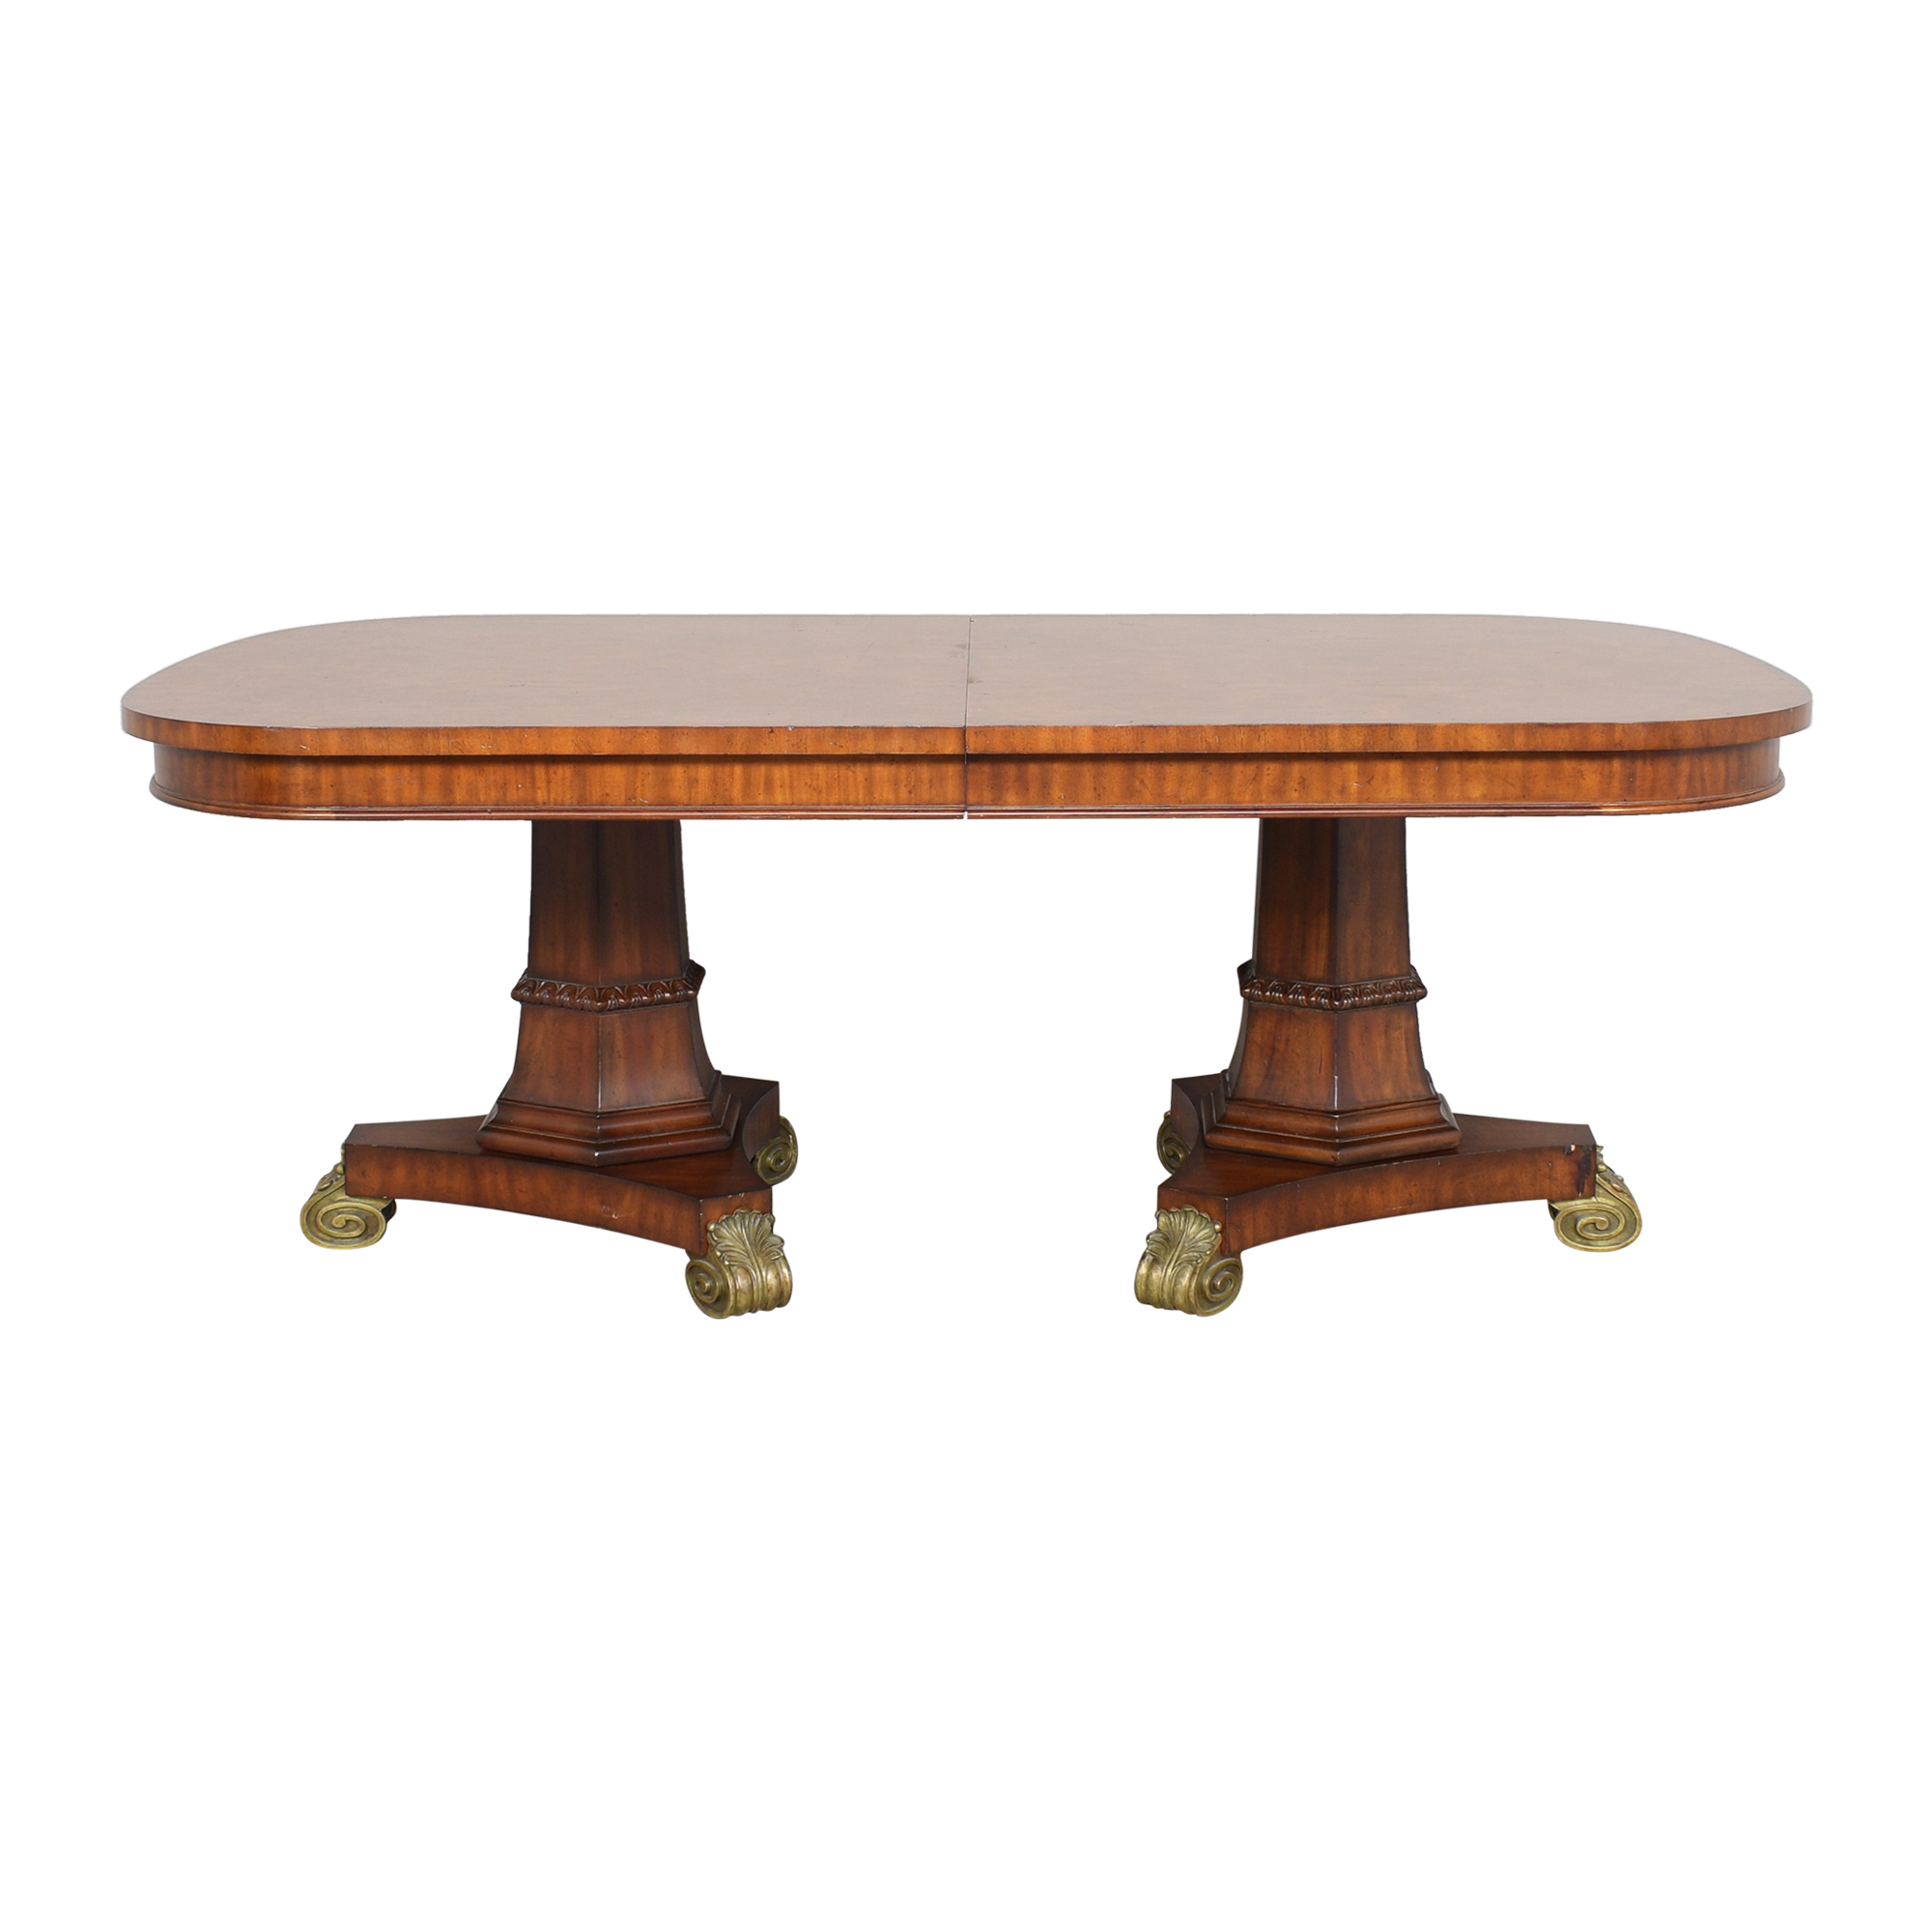 shop Thomasville Ernest Hemingway Dining Table Thomasville Dinner Tables